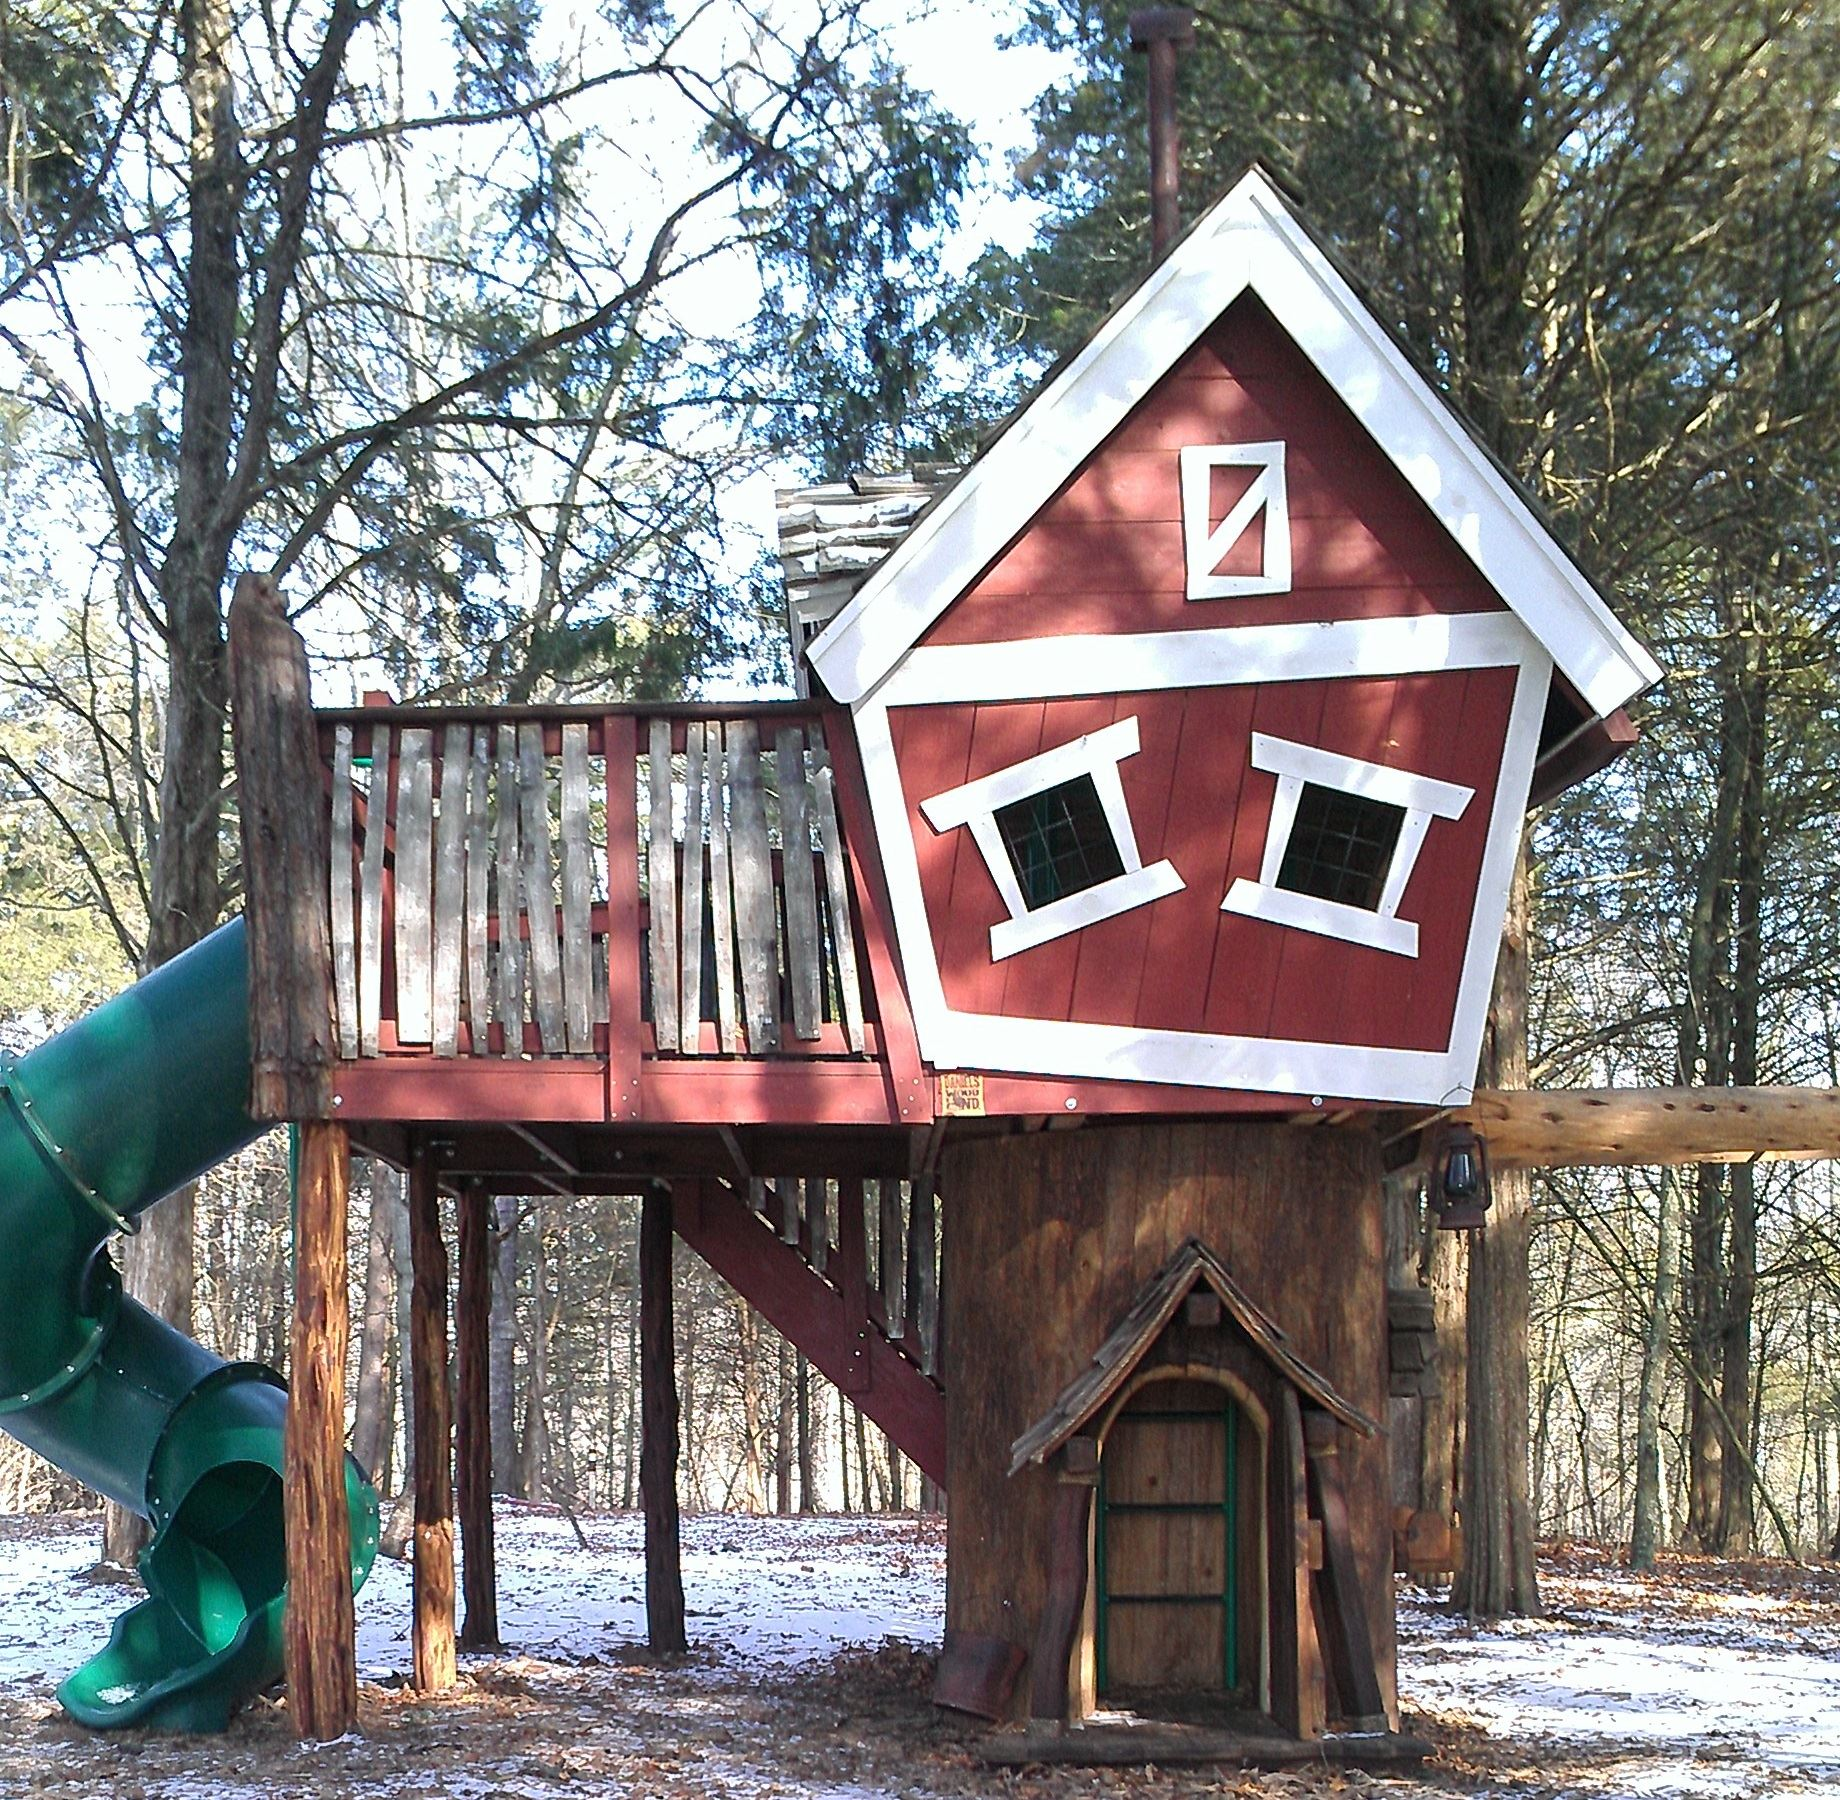 The Grange - Bear Barn Tree House